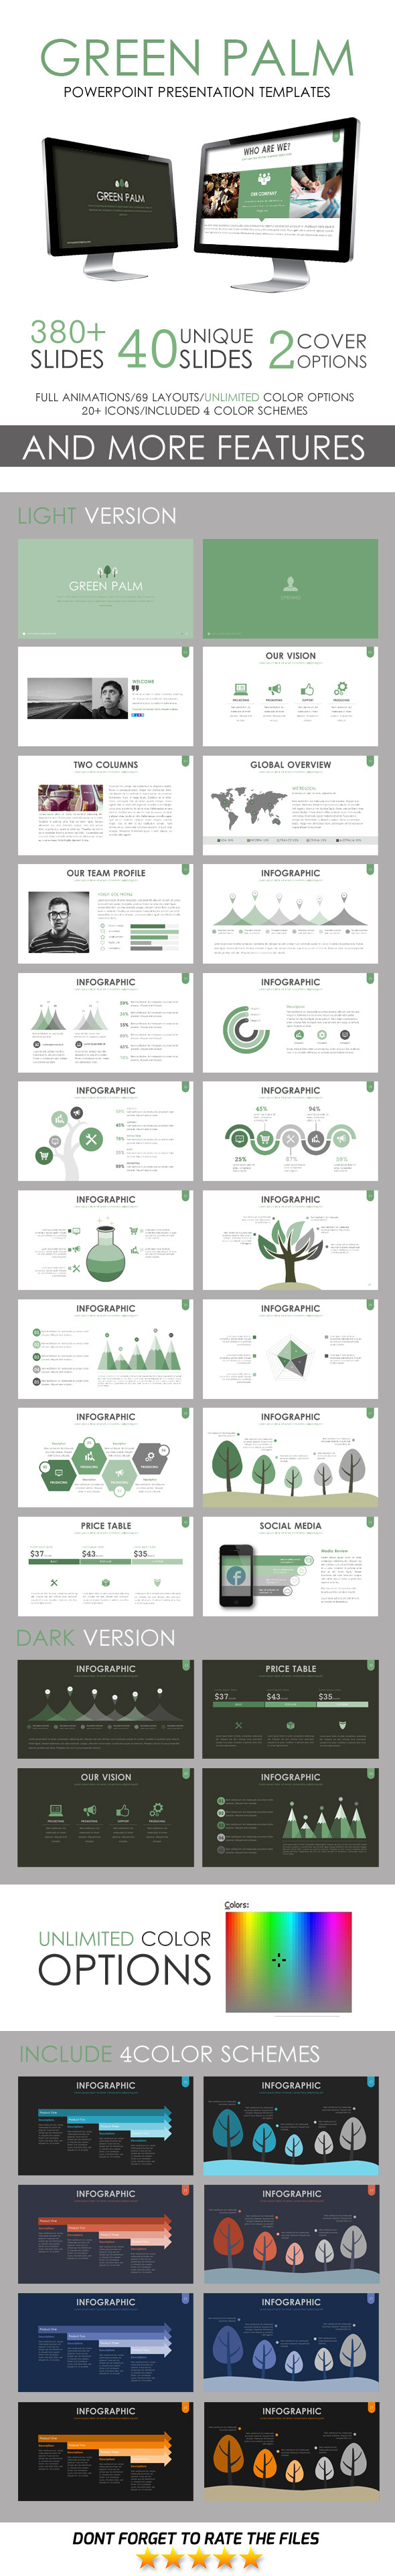 GraphicRiver Green Palm PowerPoint Template 11246503